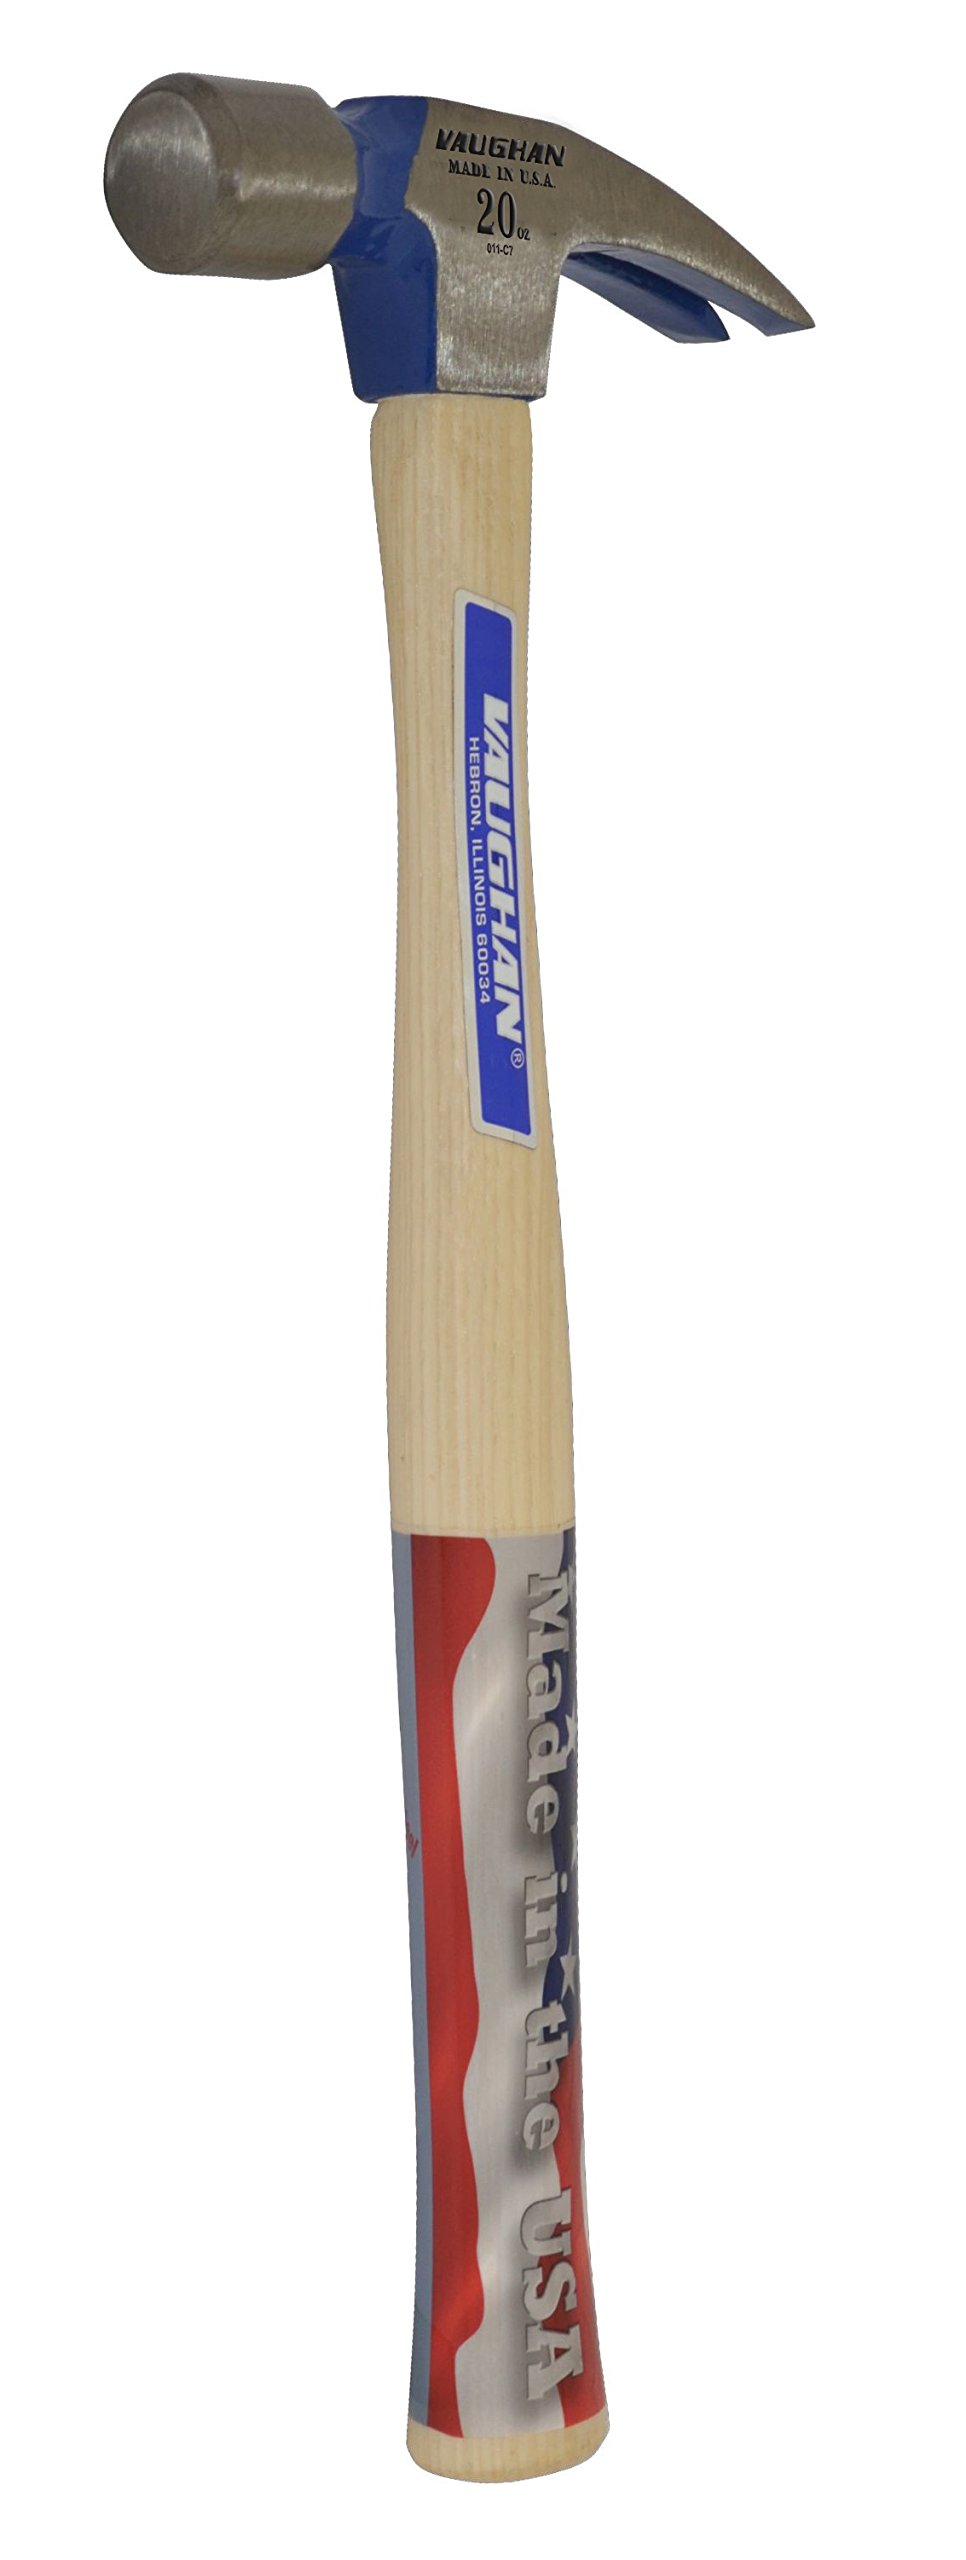 Vaughan 999L 20-Ounce Professional Framing Hammer, Smooth Face, Longer White Hickory Handle, 16-Inch Long. by Vaughan & Bushnell